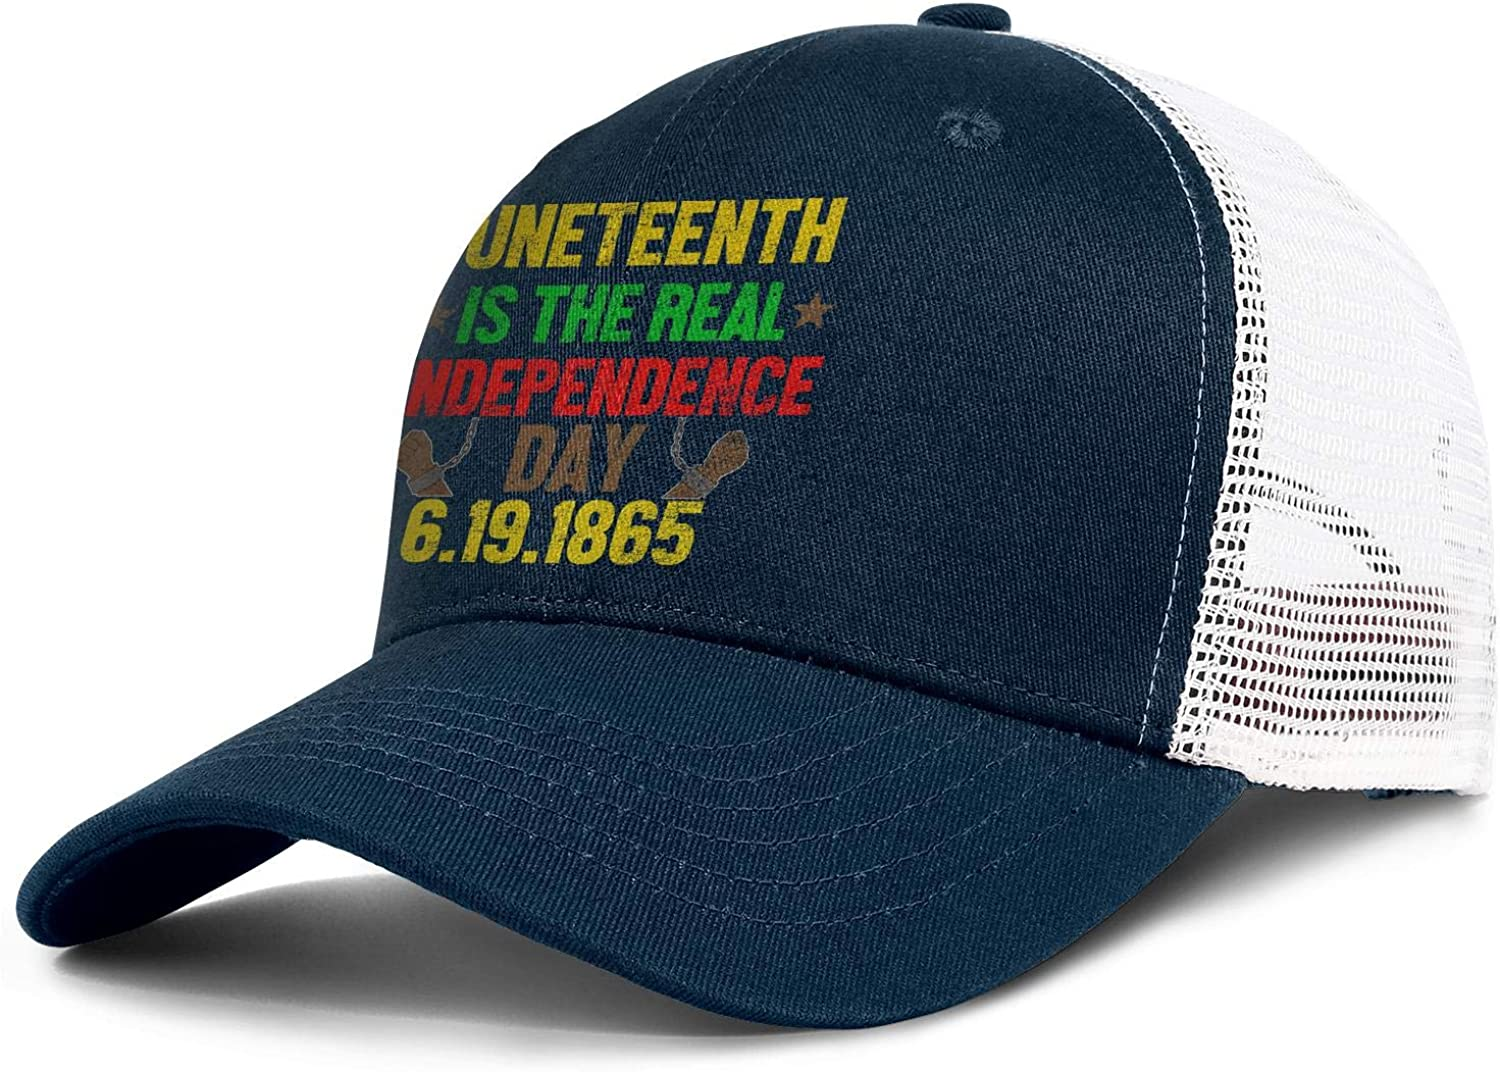 Happy Juneteenth Day Chain Unisex Mesh Back Cap Two-Tone Stretch Sun Hats Adjustable Trucker Baseball Caps